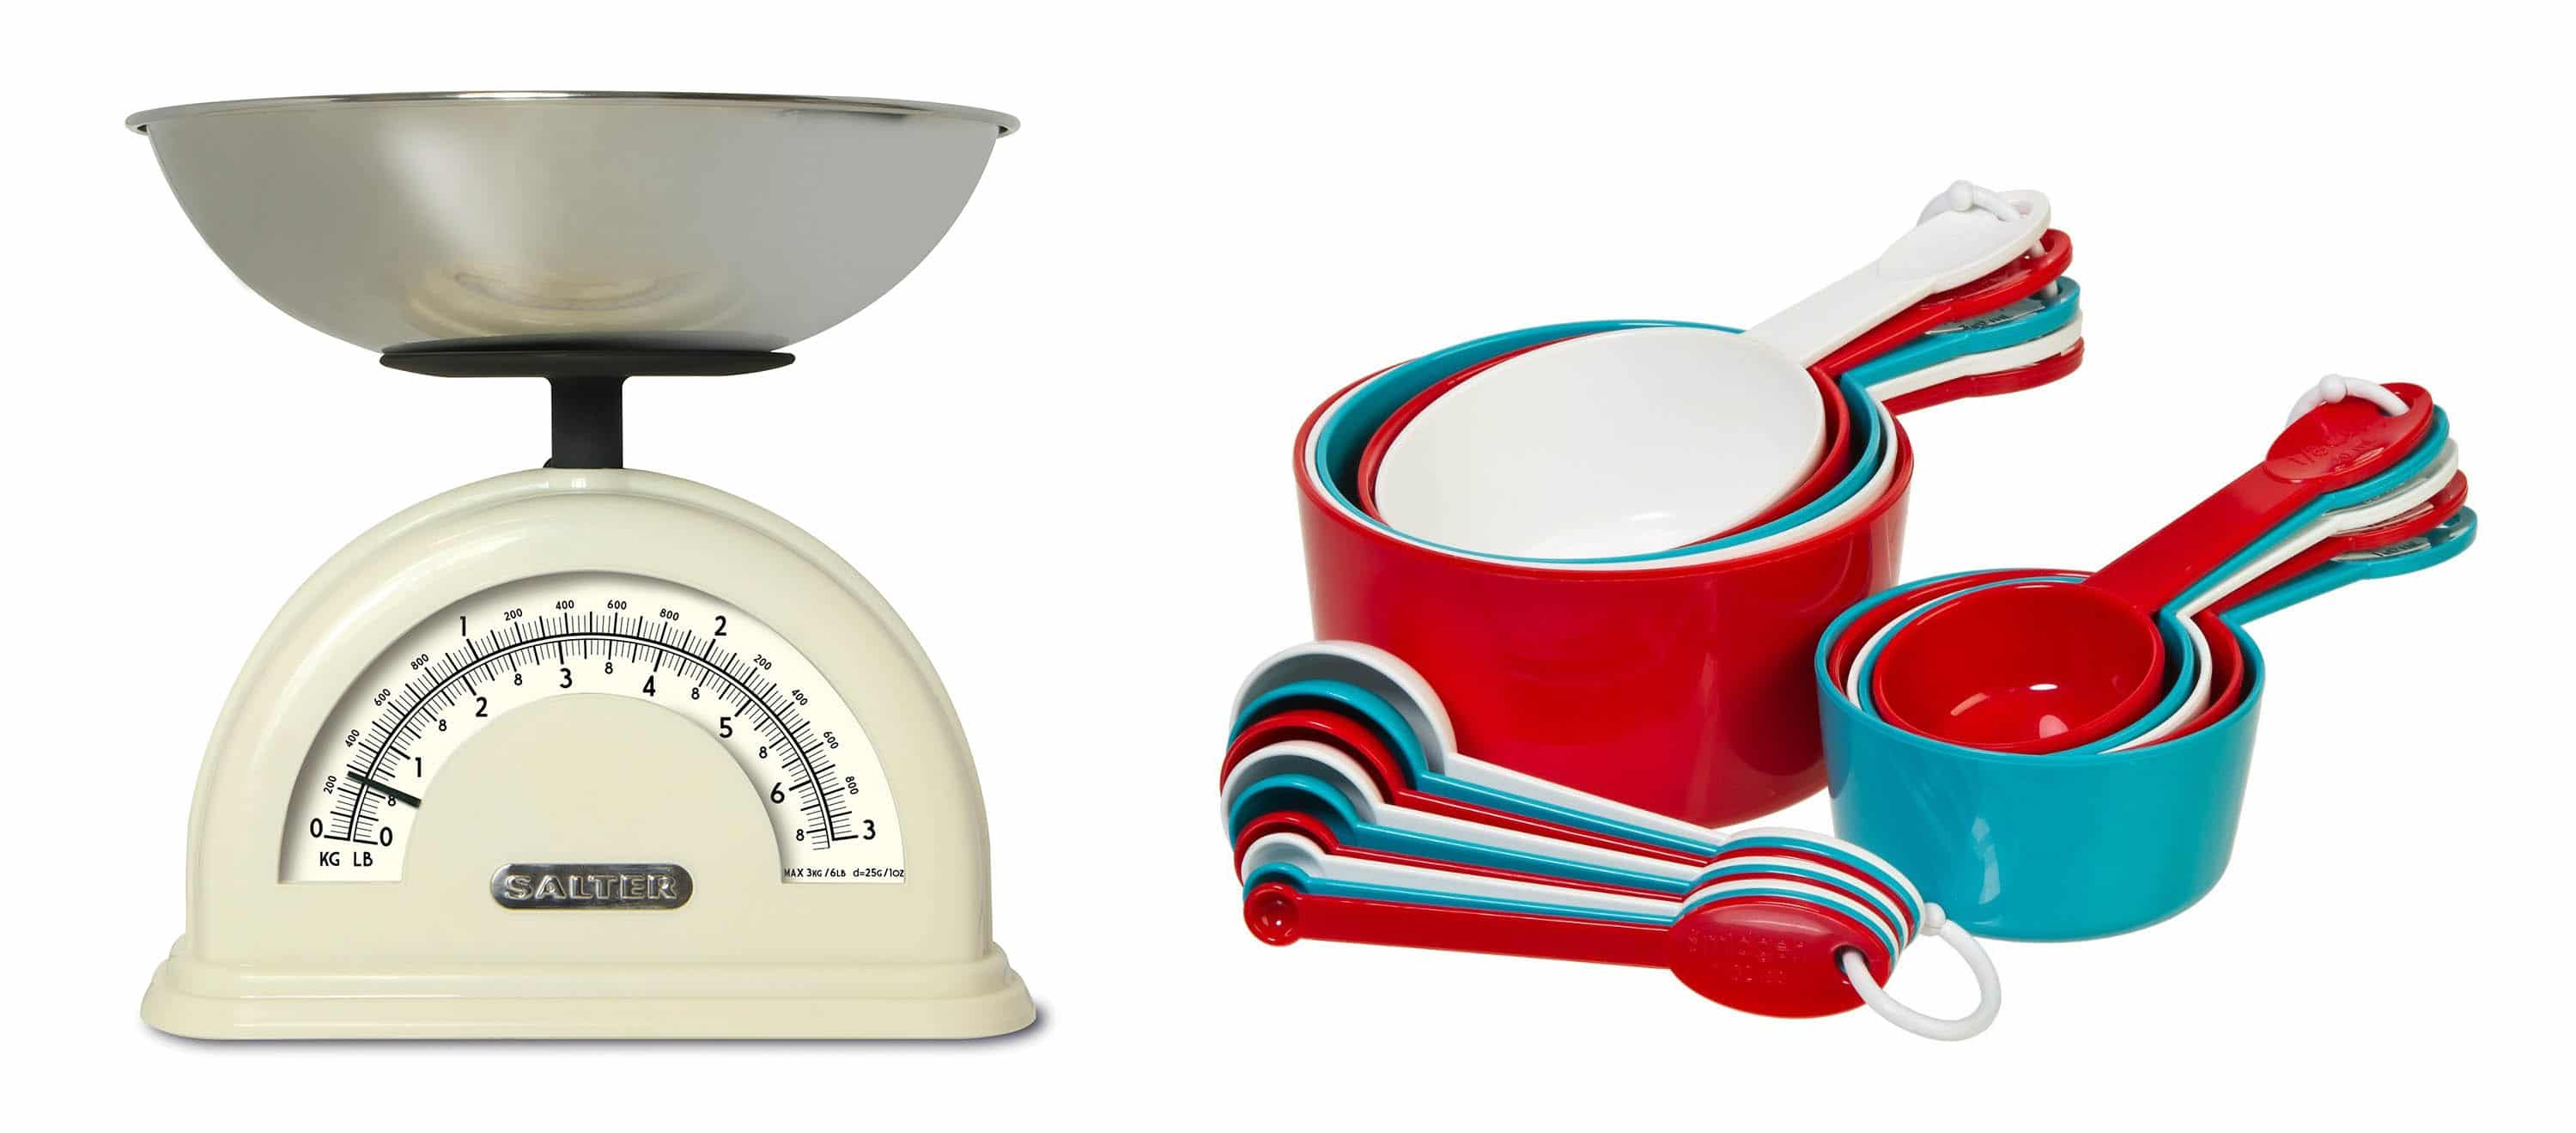 Weighing scales and measuring cups